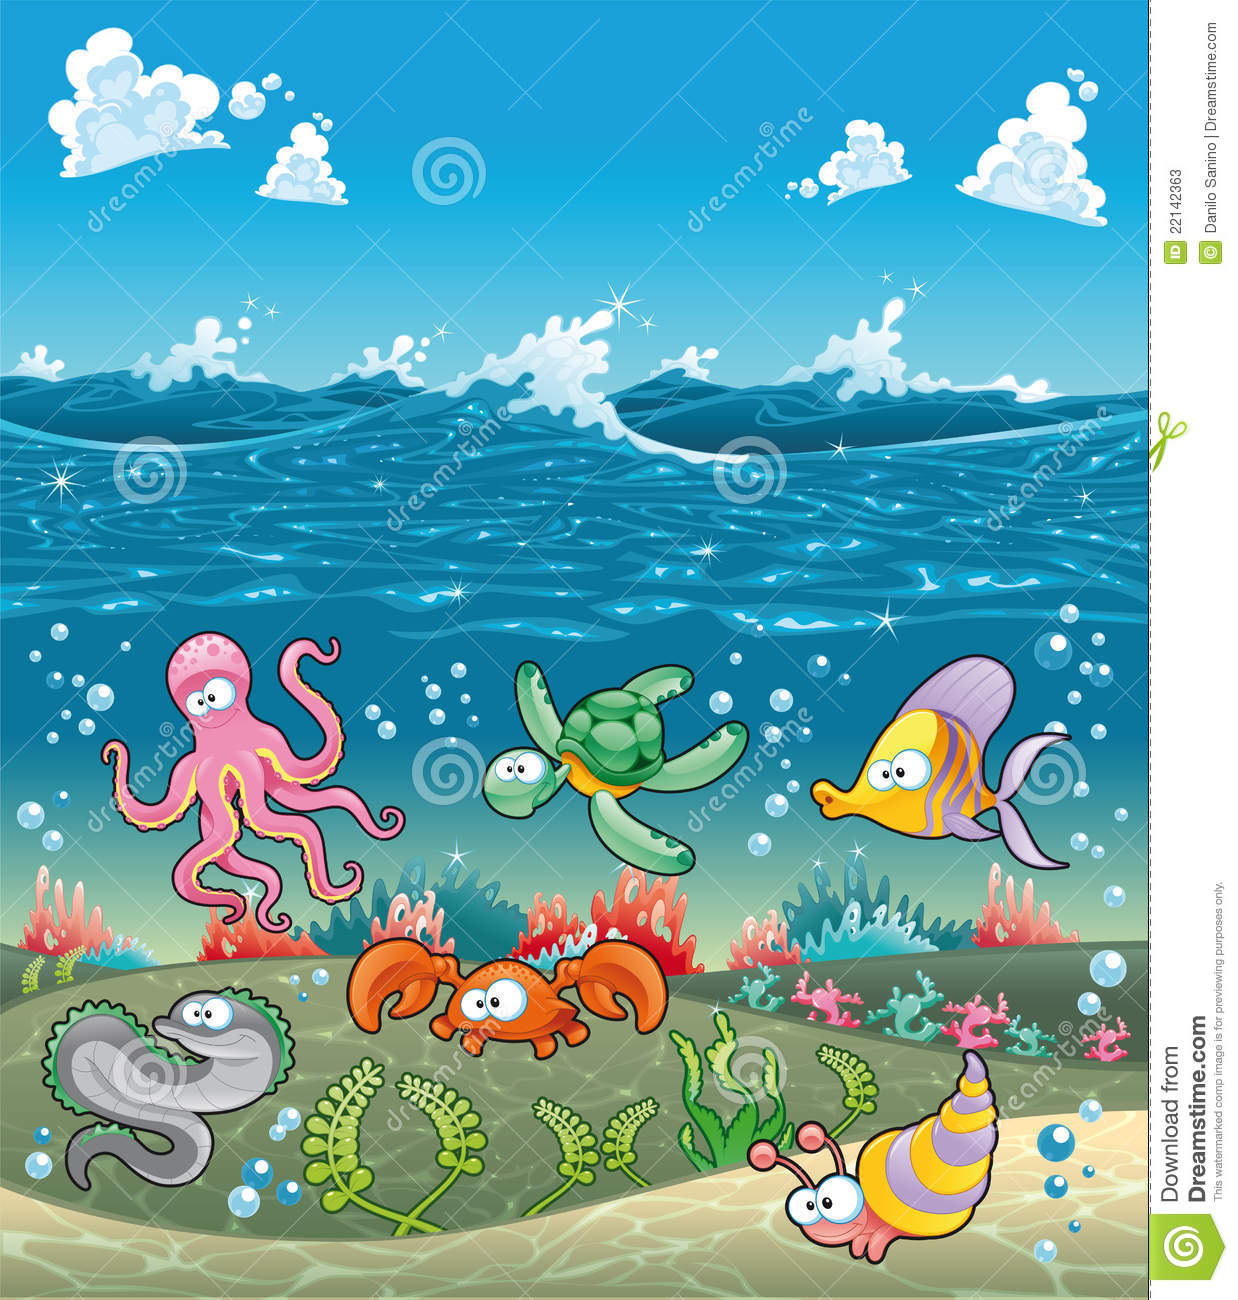 Clipart under the sea pictures.